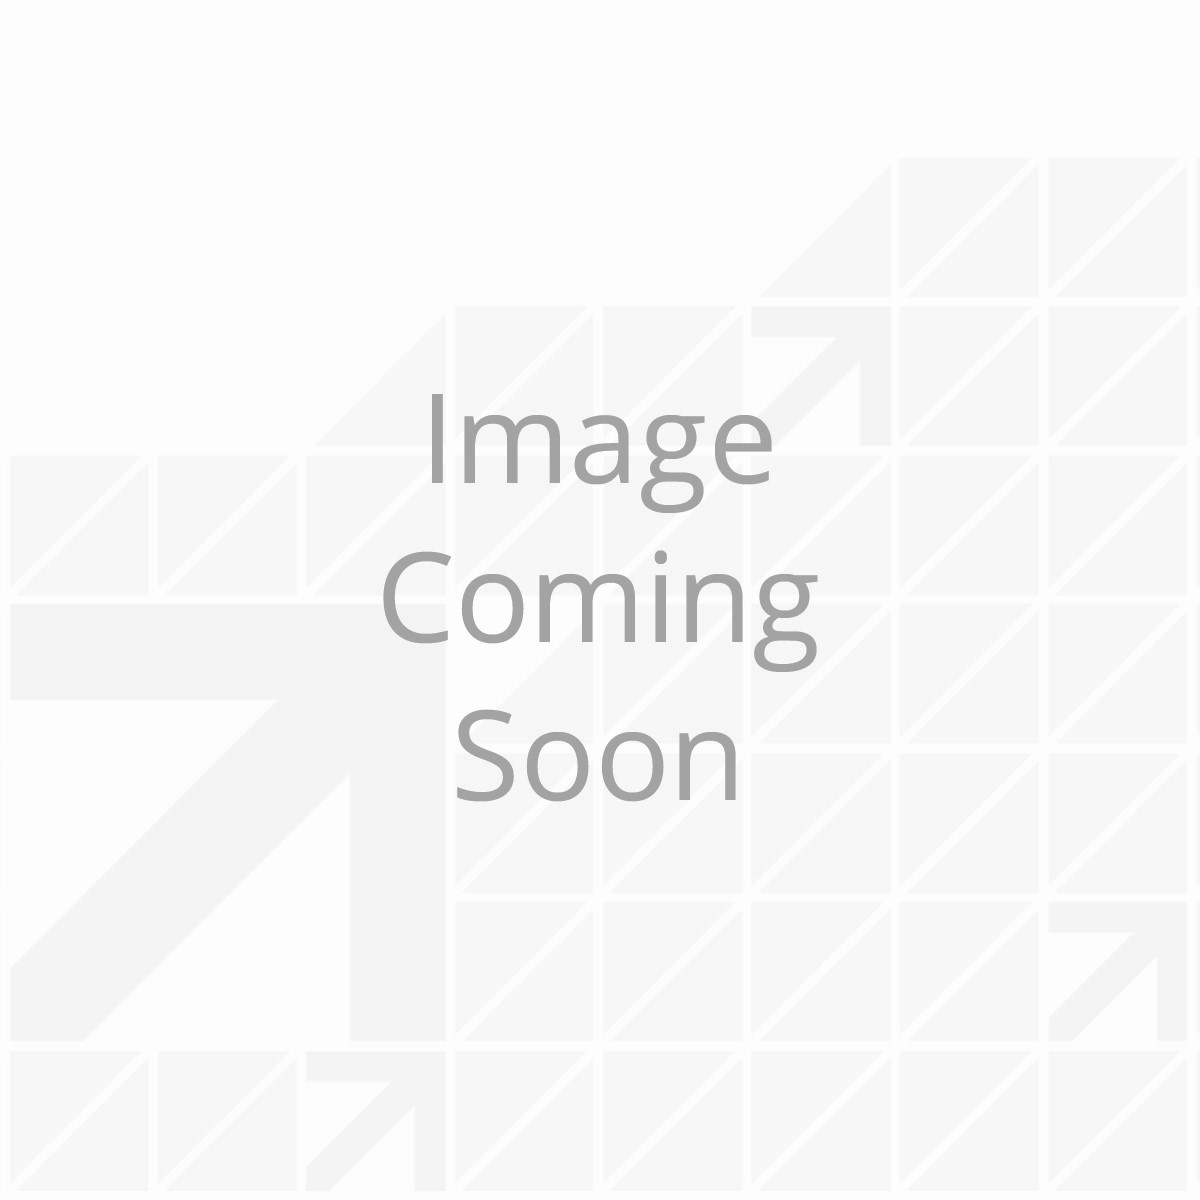 Leveling Pump W/ 8 Bank Manifold 3 Point W/ 2 Slide & A Flow Divider